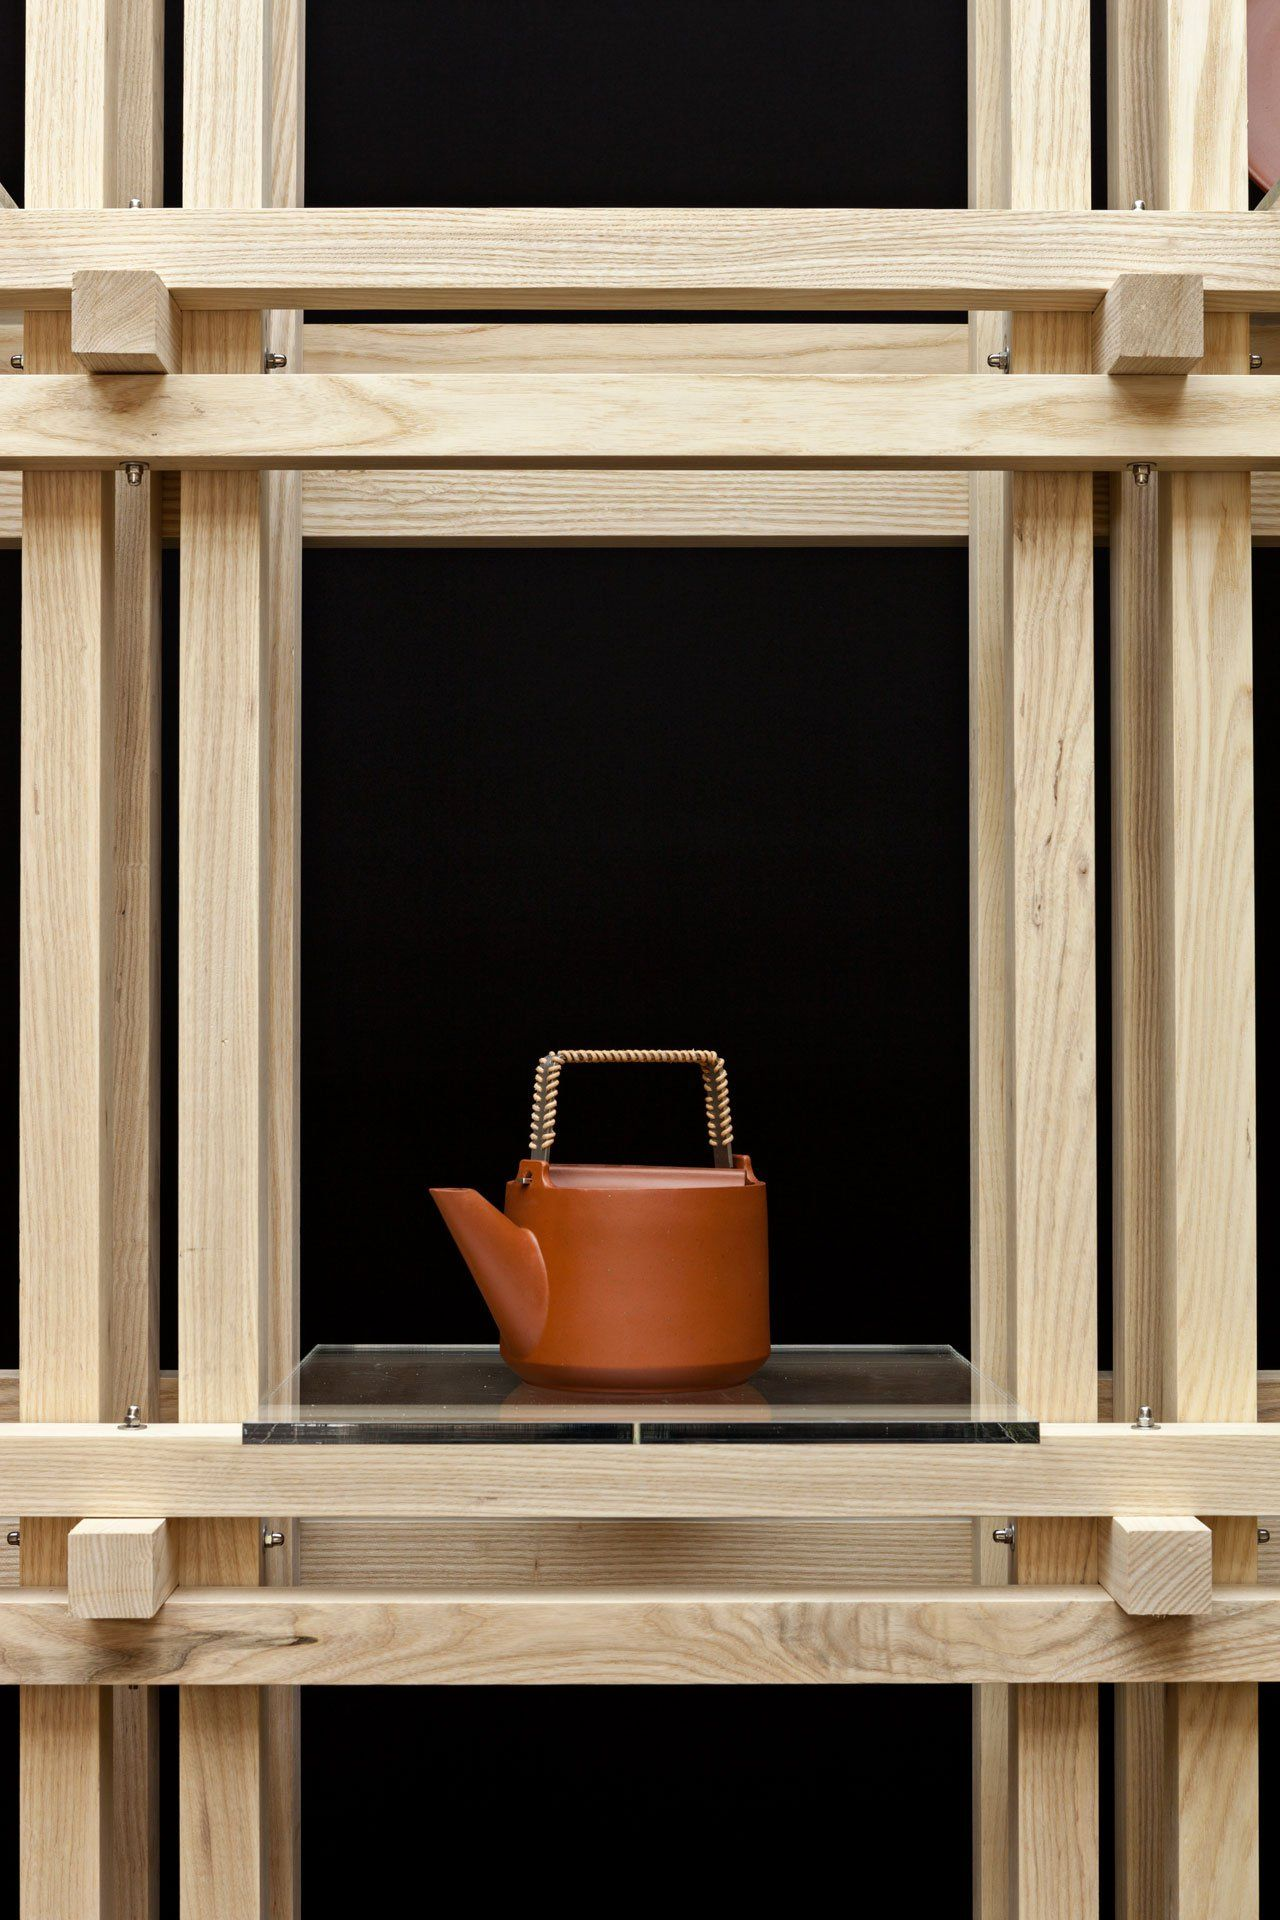 The Tea House by Christopher Jenner Best of Milan Design Week 2017 yatzer